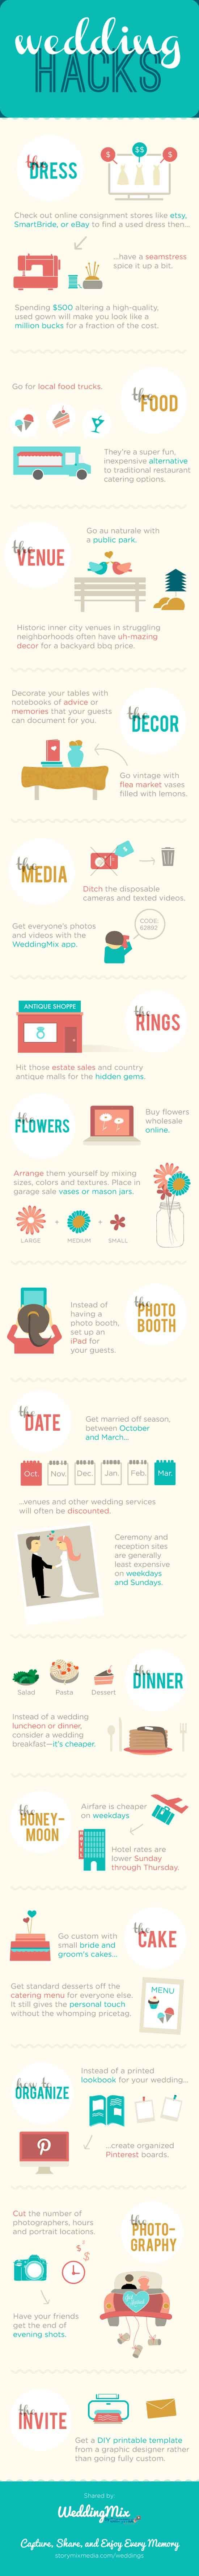 DIY Wedding Ideas | Cool Hacks for DIY Weddings on a Budget - cheap ideas and budget tips [ Infographic ]